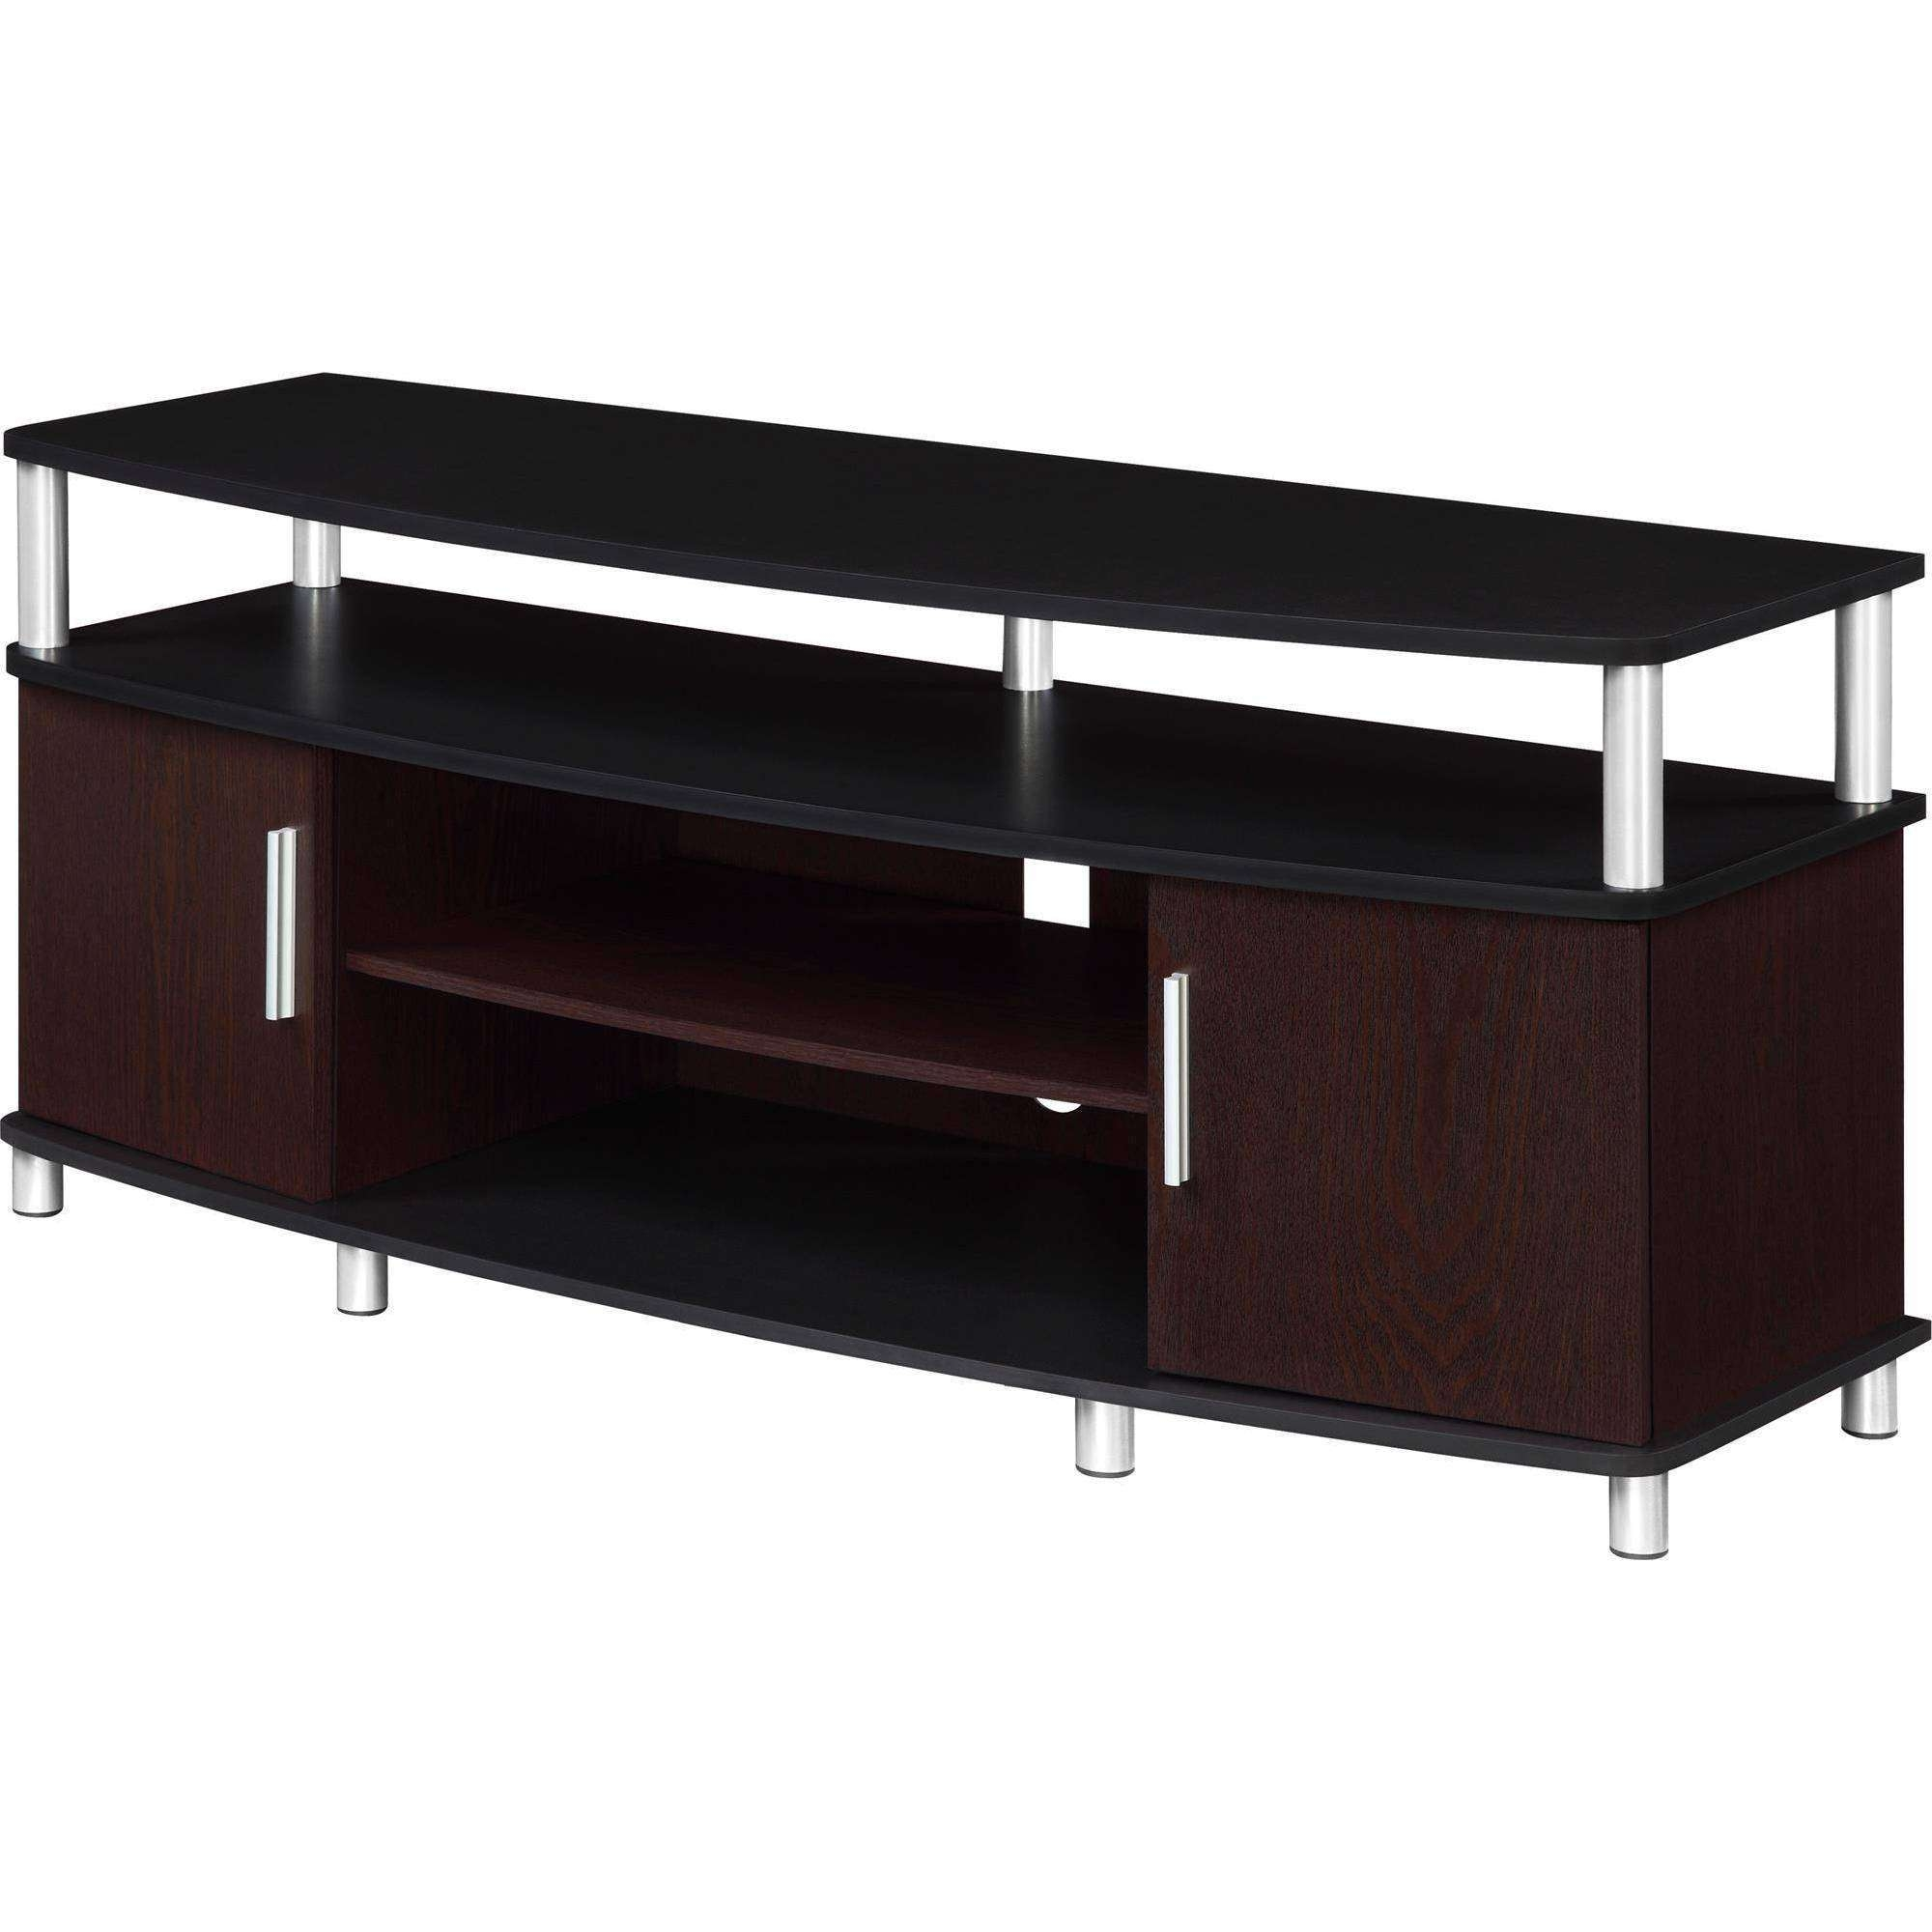 Tv : Modern Low Tv Stands Horrifying Modern Low Plasma Tv Stand Regarding Modern Low Profile Tv Stands (View 16 of 20)